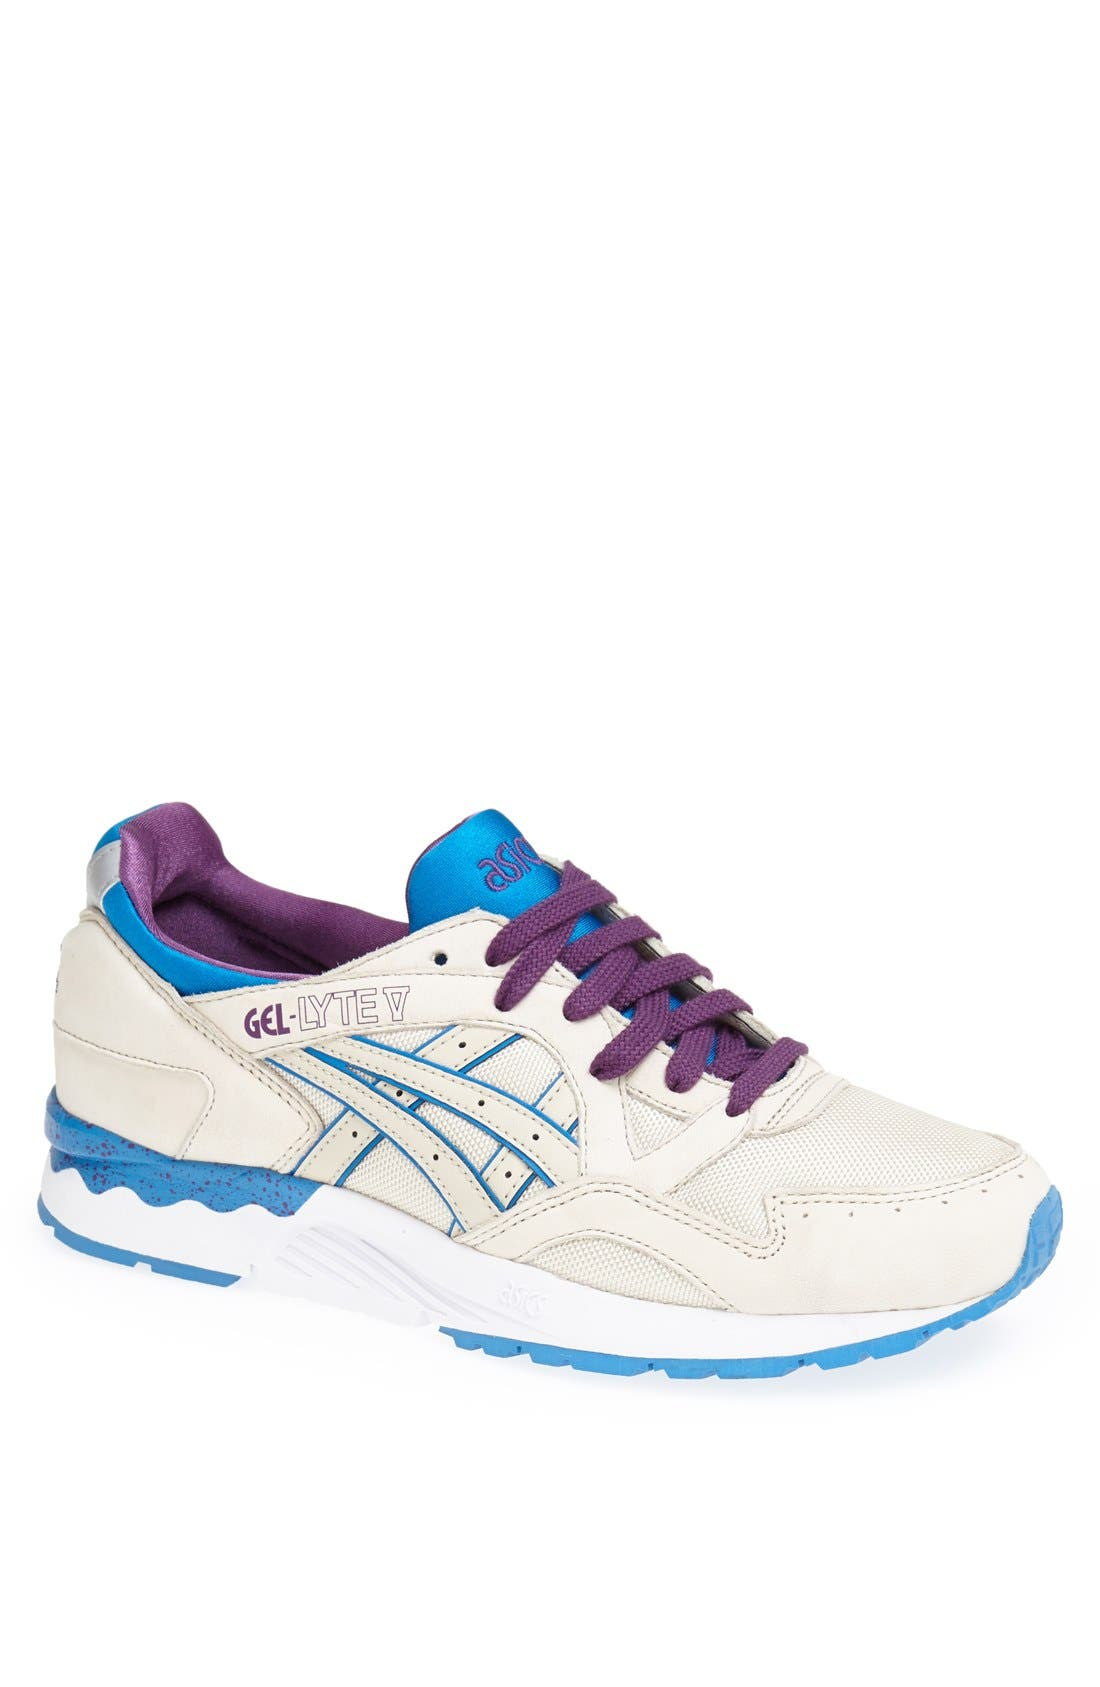 Main Image - ASICS® 'GEL-Lyte V' Sneaker (Men)